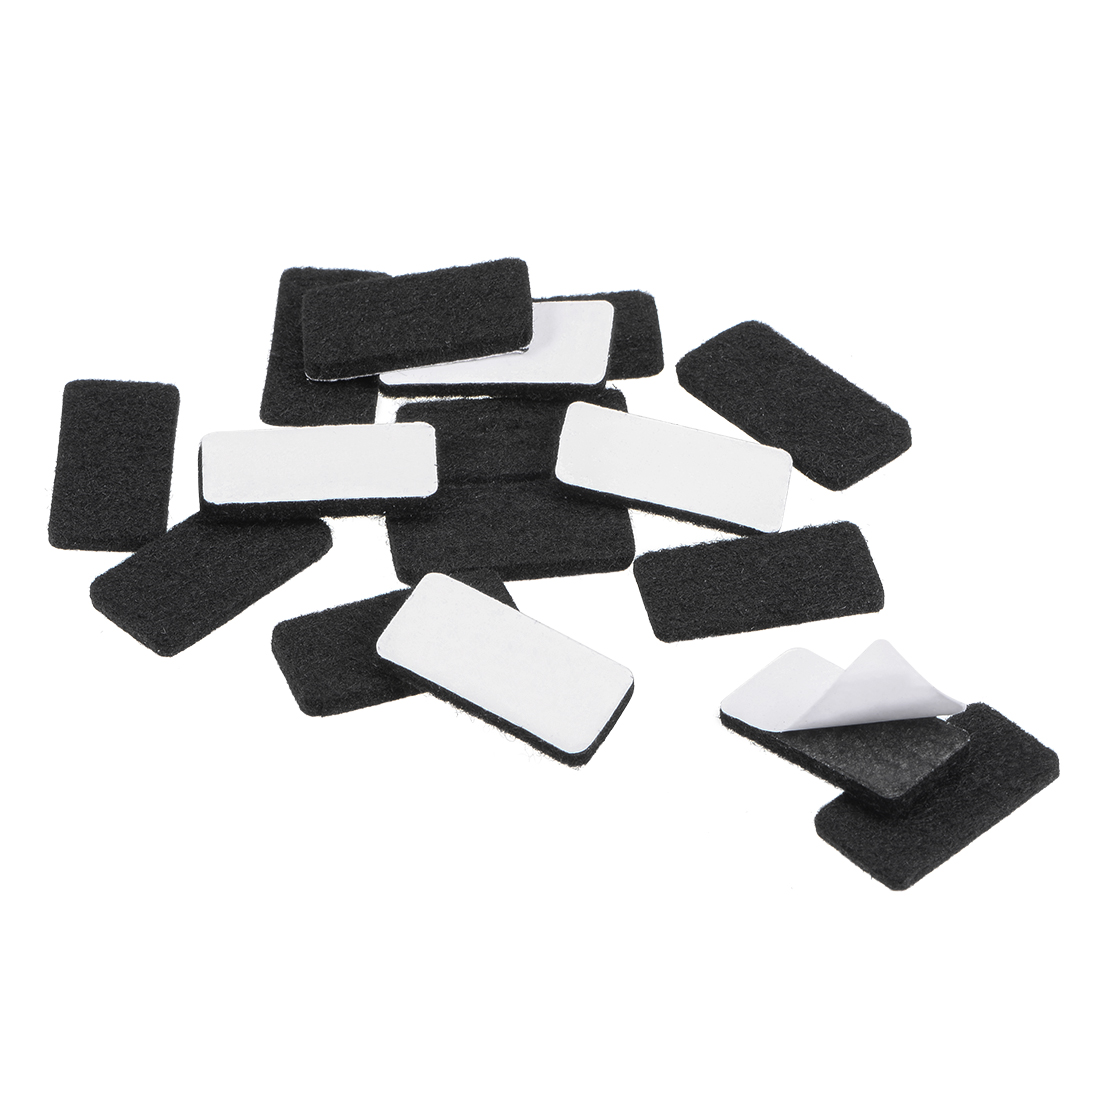 Furniture Pads 30mm x 15mm Adhesive Felt Pads 3mm Thick Black 28Pcs